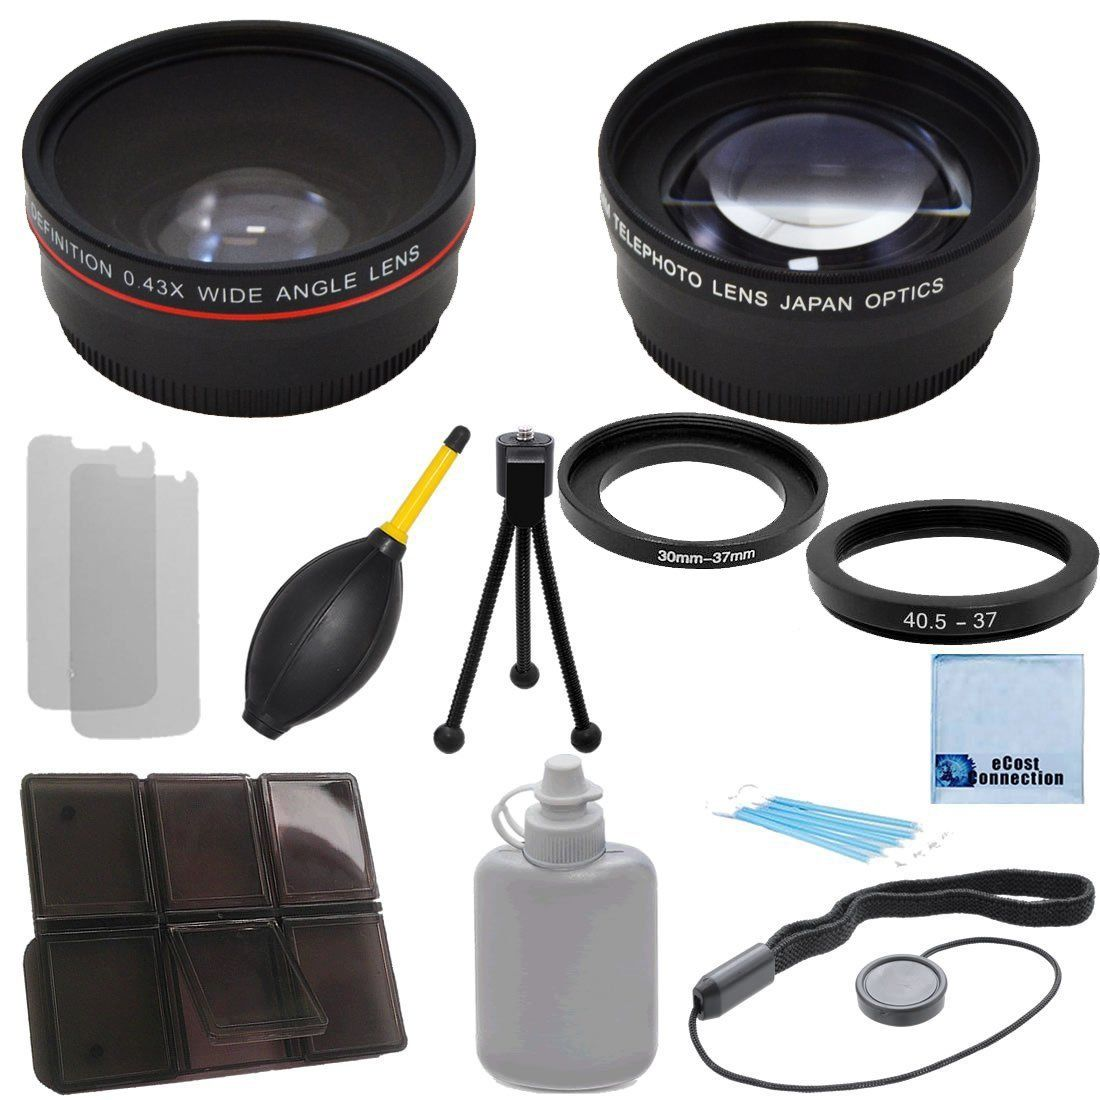 Pro Series 37mm 043x Wide Angle Lens 22x Telephoto Lens With